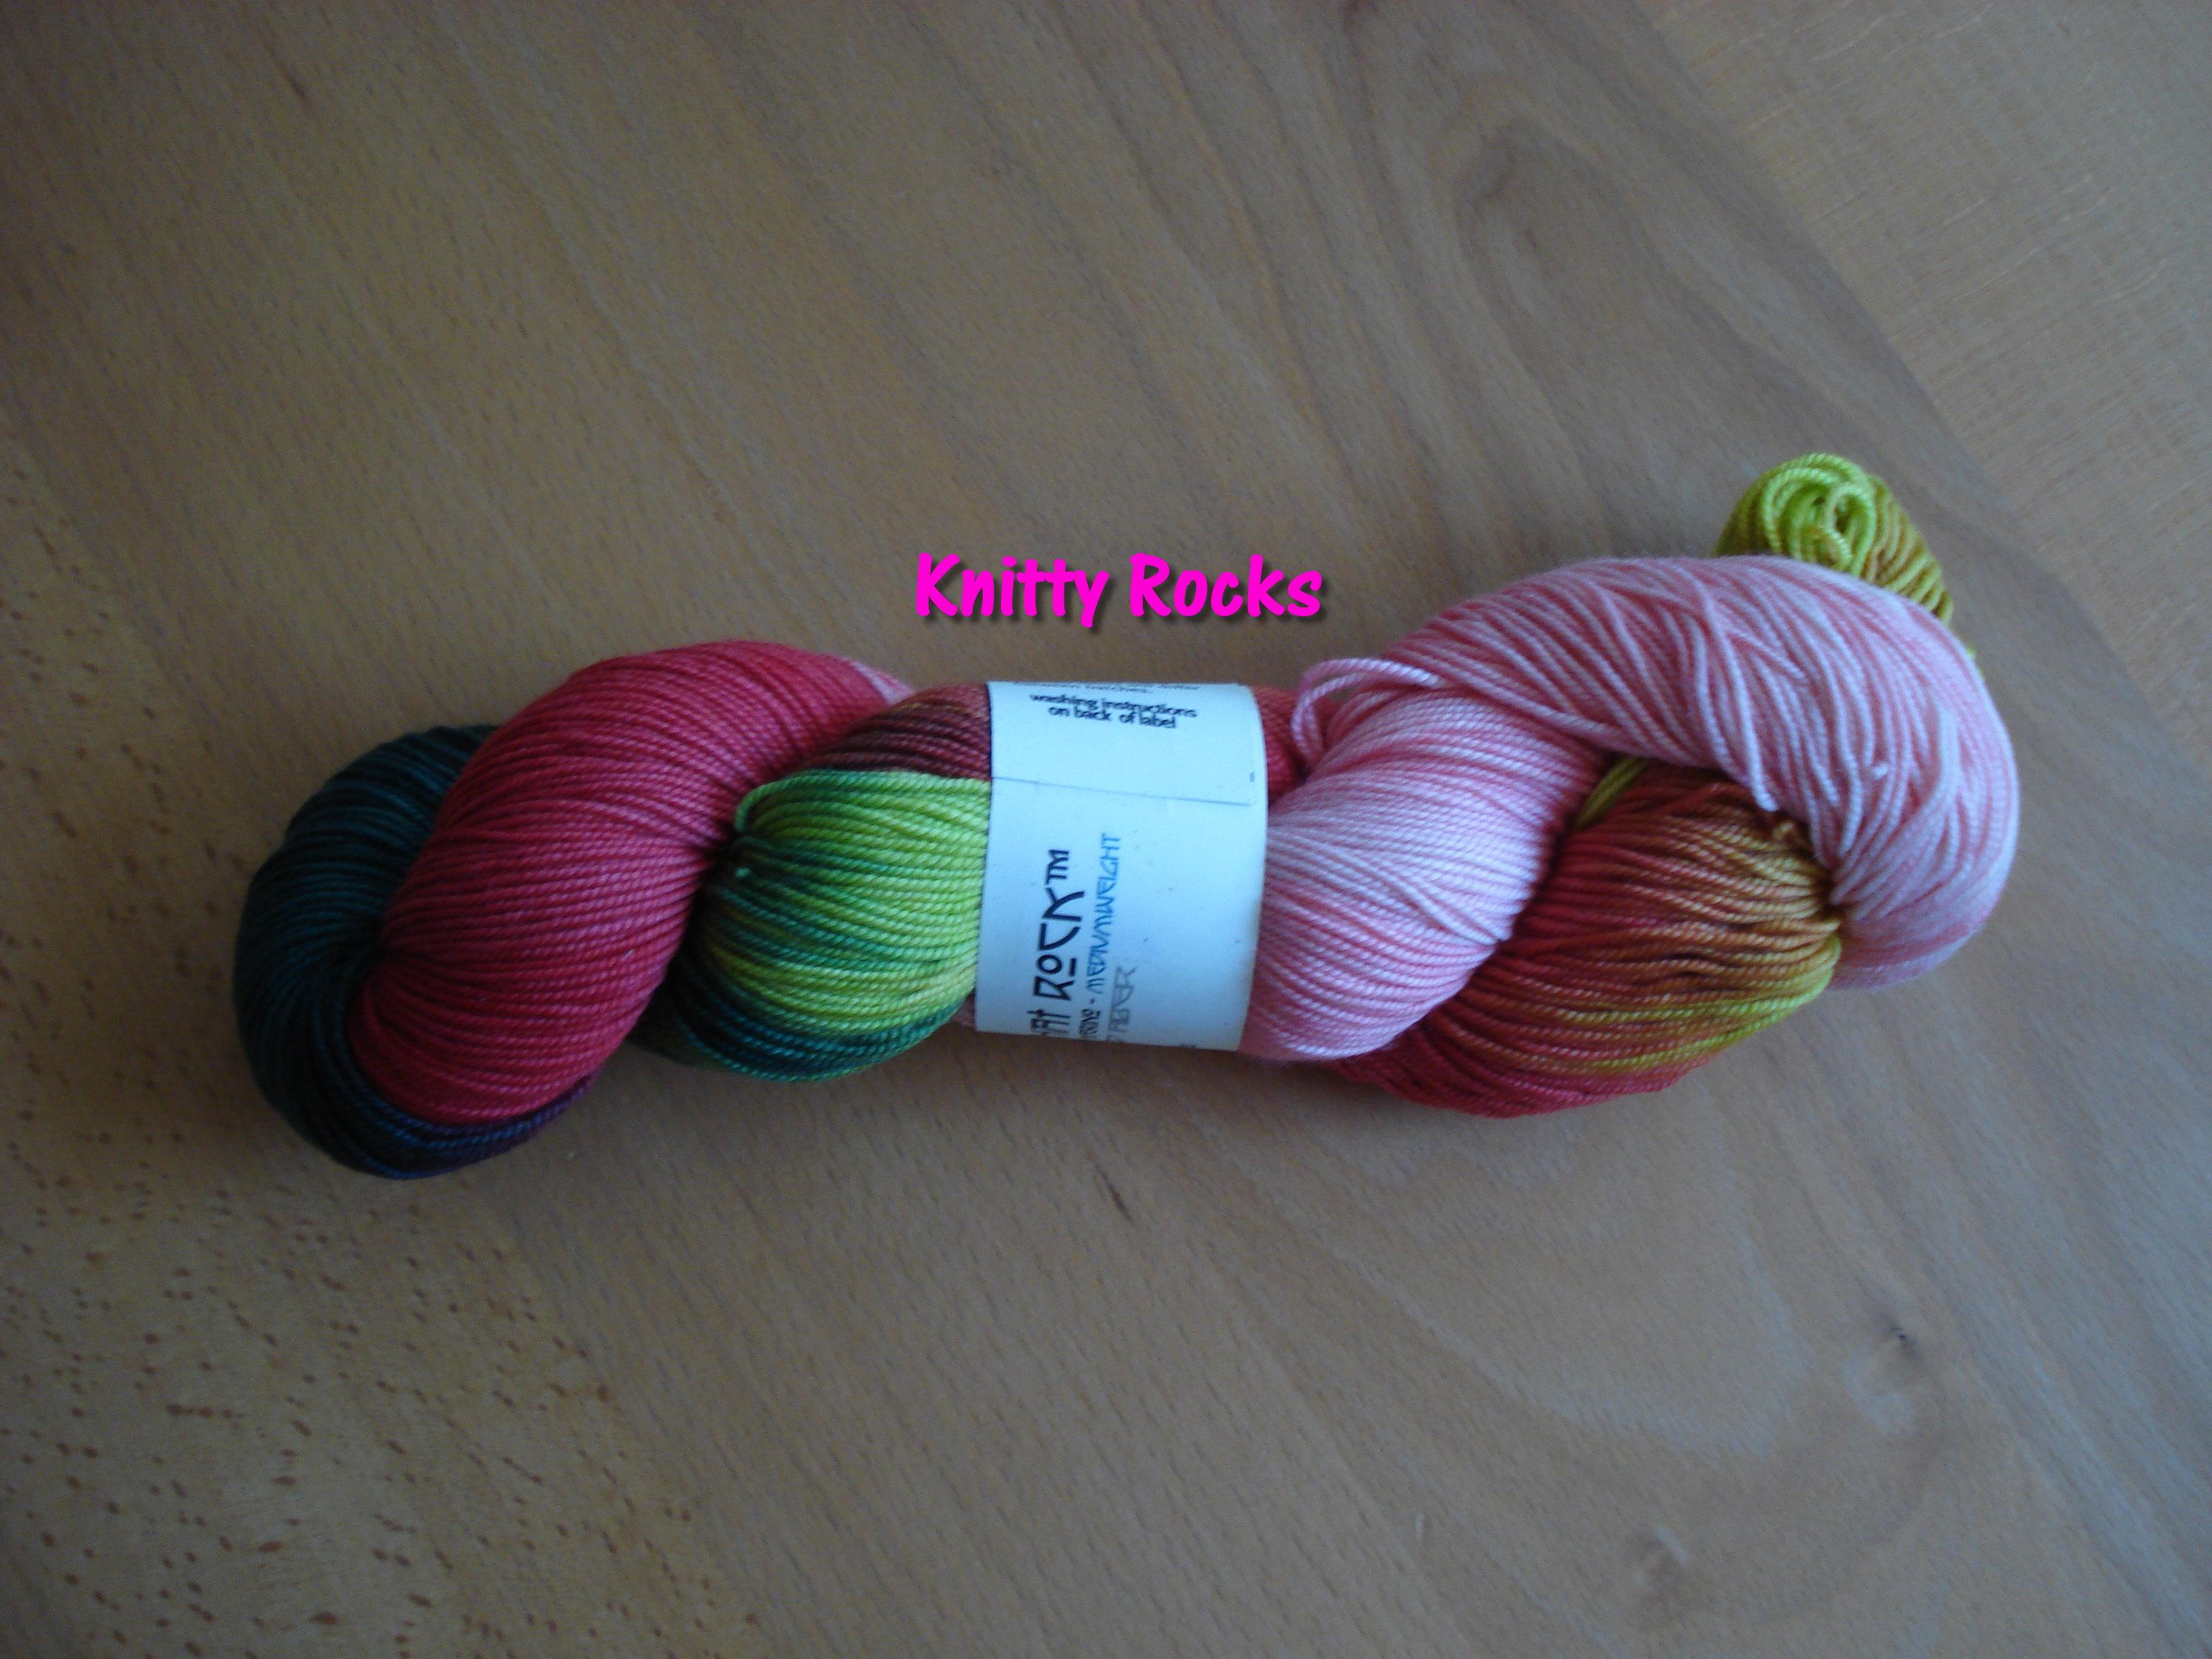 str-knitty-rocks.JPG